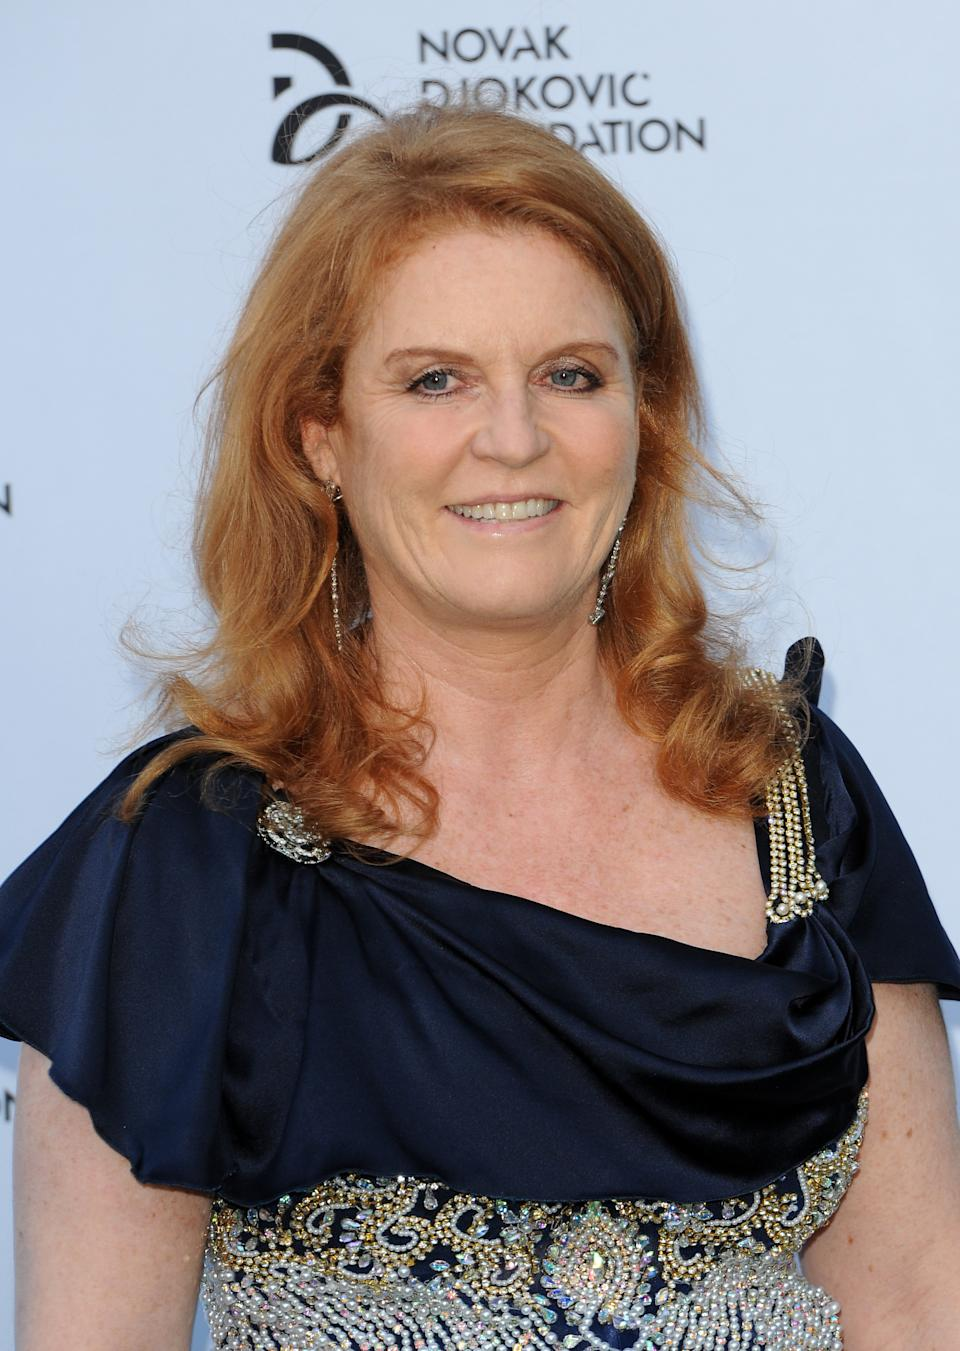 LONDON, UNITED KINGDOM - JULY 08: Sarah Ferguson attends the Novak Djokovic Foundation London gala dinner at The Roundhouse on July 8, 2013 in London, England. (Photo by Eamonn M. McCormack/Getty Images)